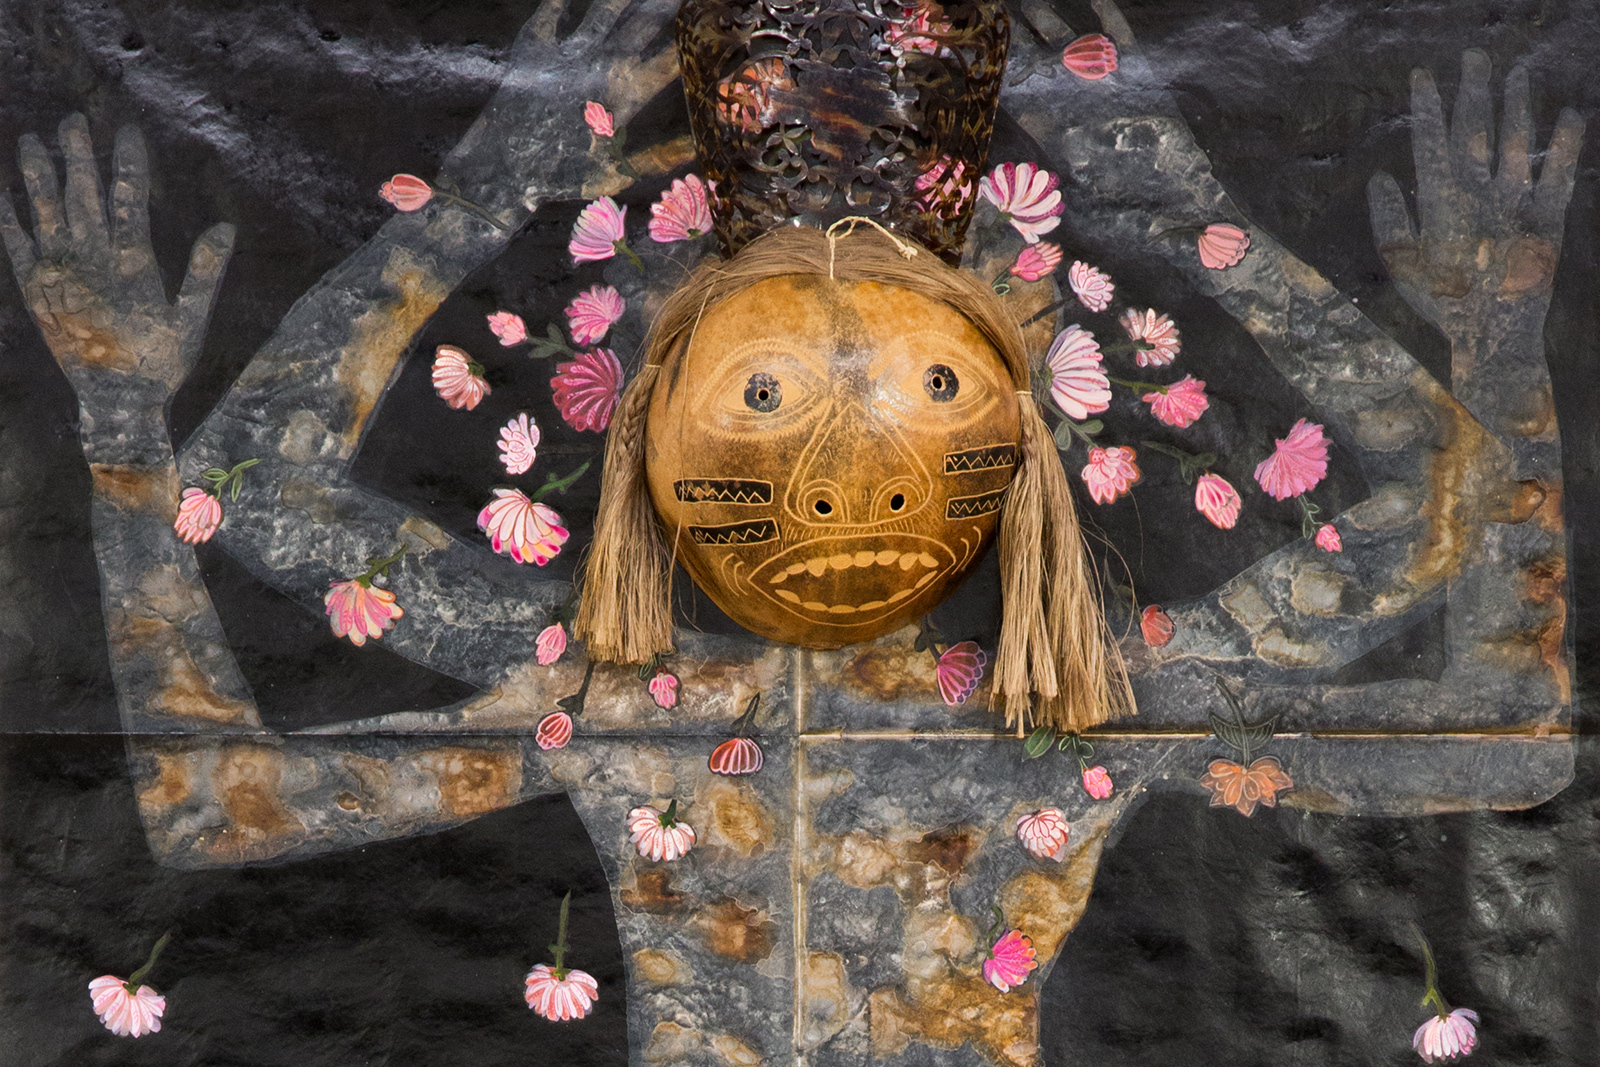 """Mixed media work of human figure from """"River"""" by Nancy Friedemann-Sánchez, featuring a carved wooden head and arms painted with flowers."""